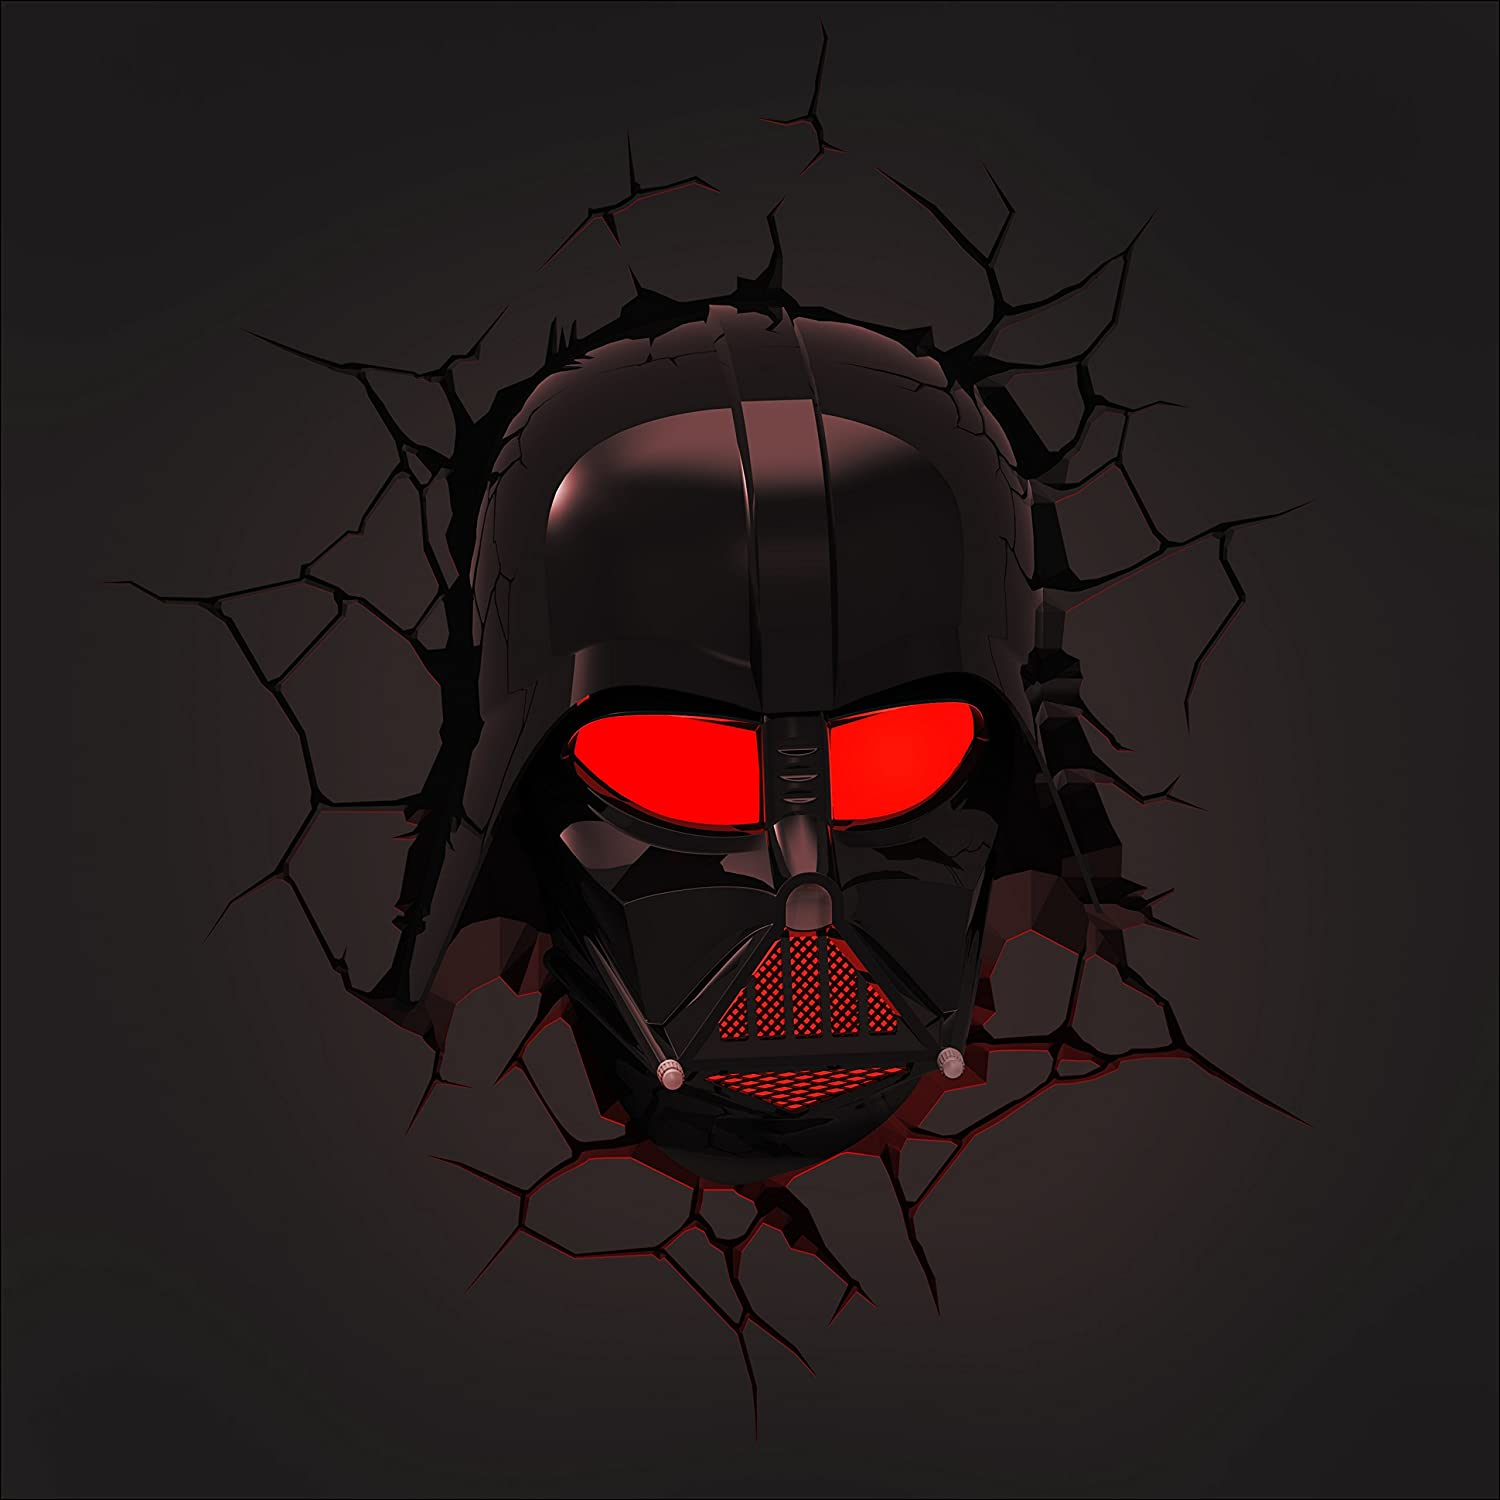 Star Wars Darth Vader 3D Wall Light With Remote Control Star Wars ...